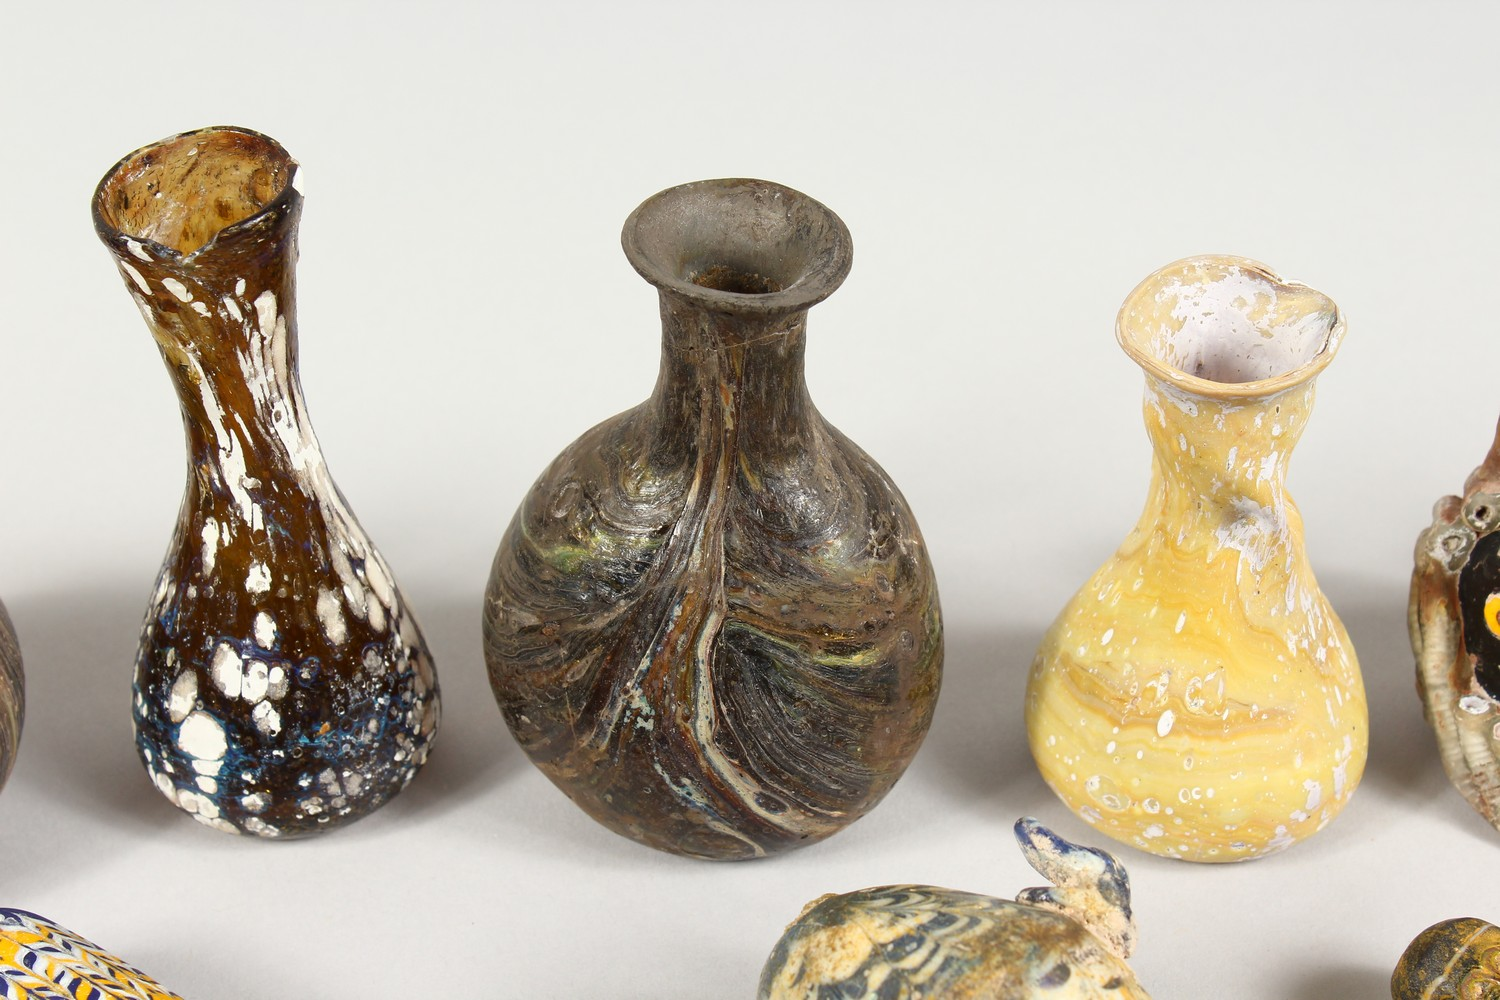 A GROUP OF THIRTEEN ROMAN GLASS BOTTLES AND JARS, including three tops in the form of heads (13). - Image 3 of 11